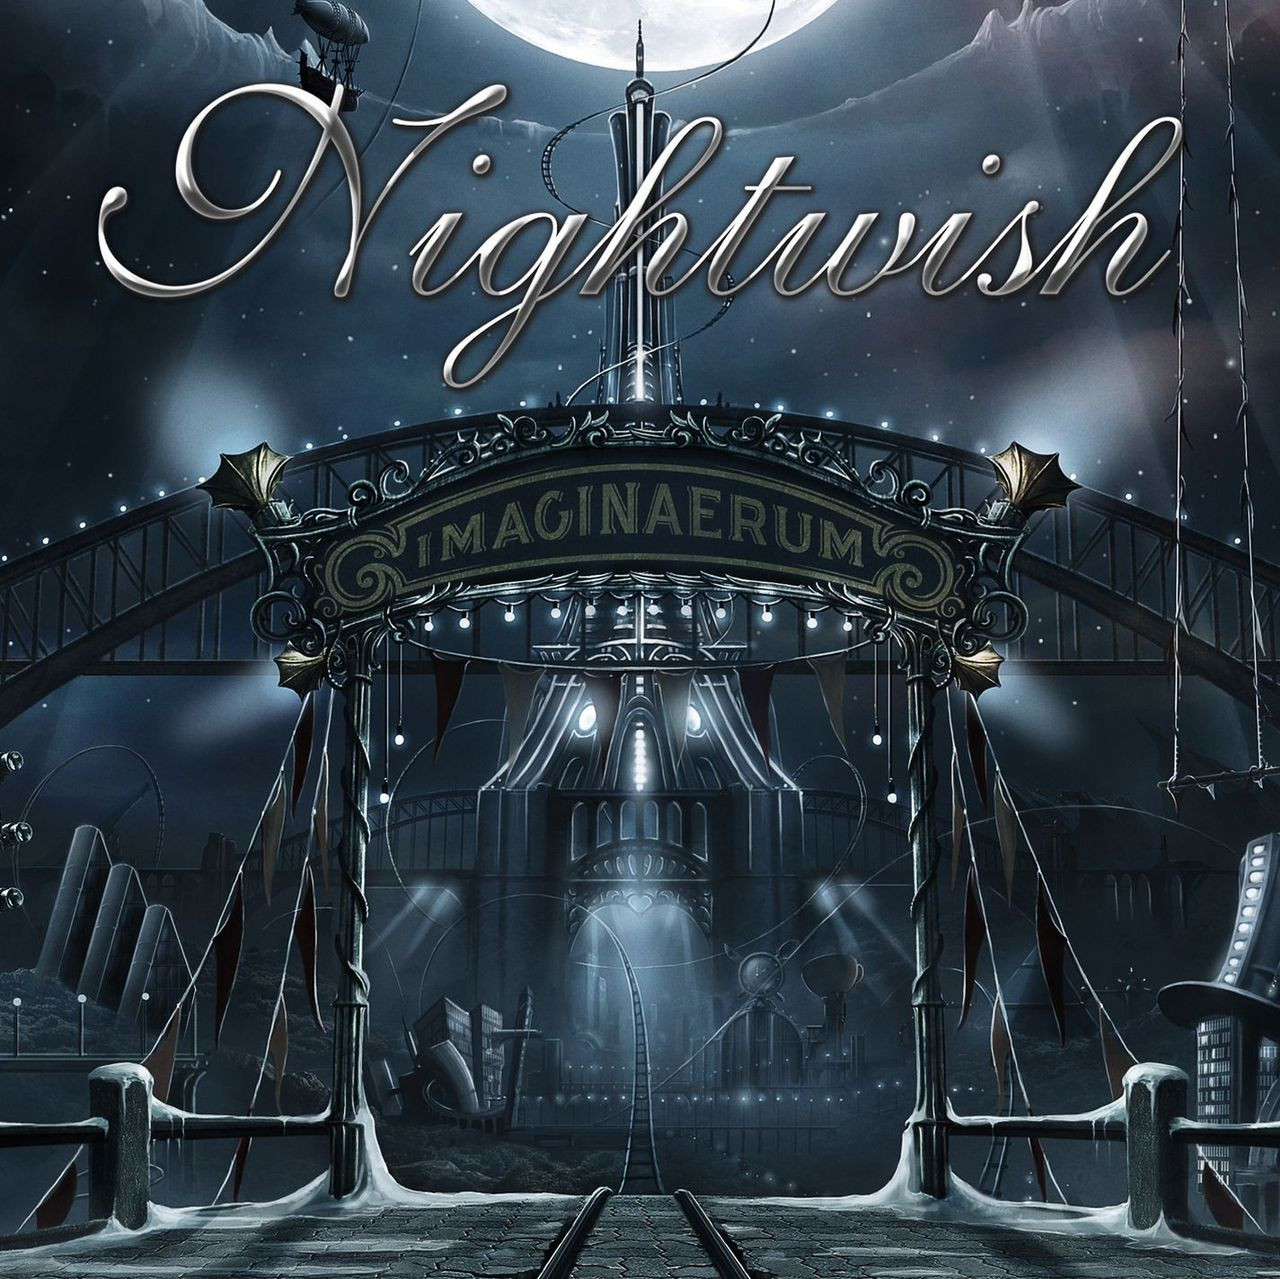 Nightwish imaginaerum by nightwish (box set, limited edition.